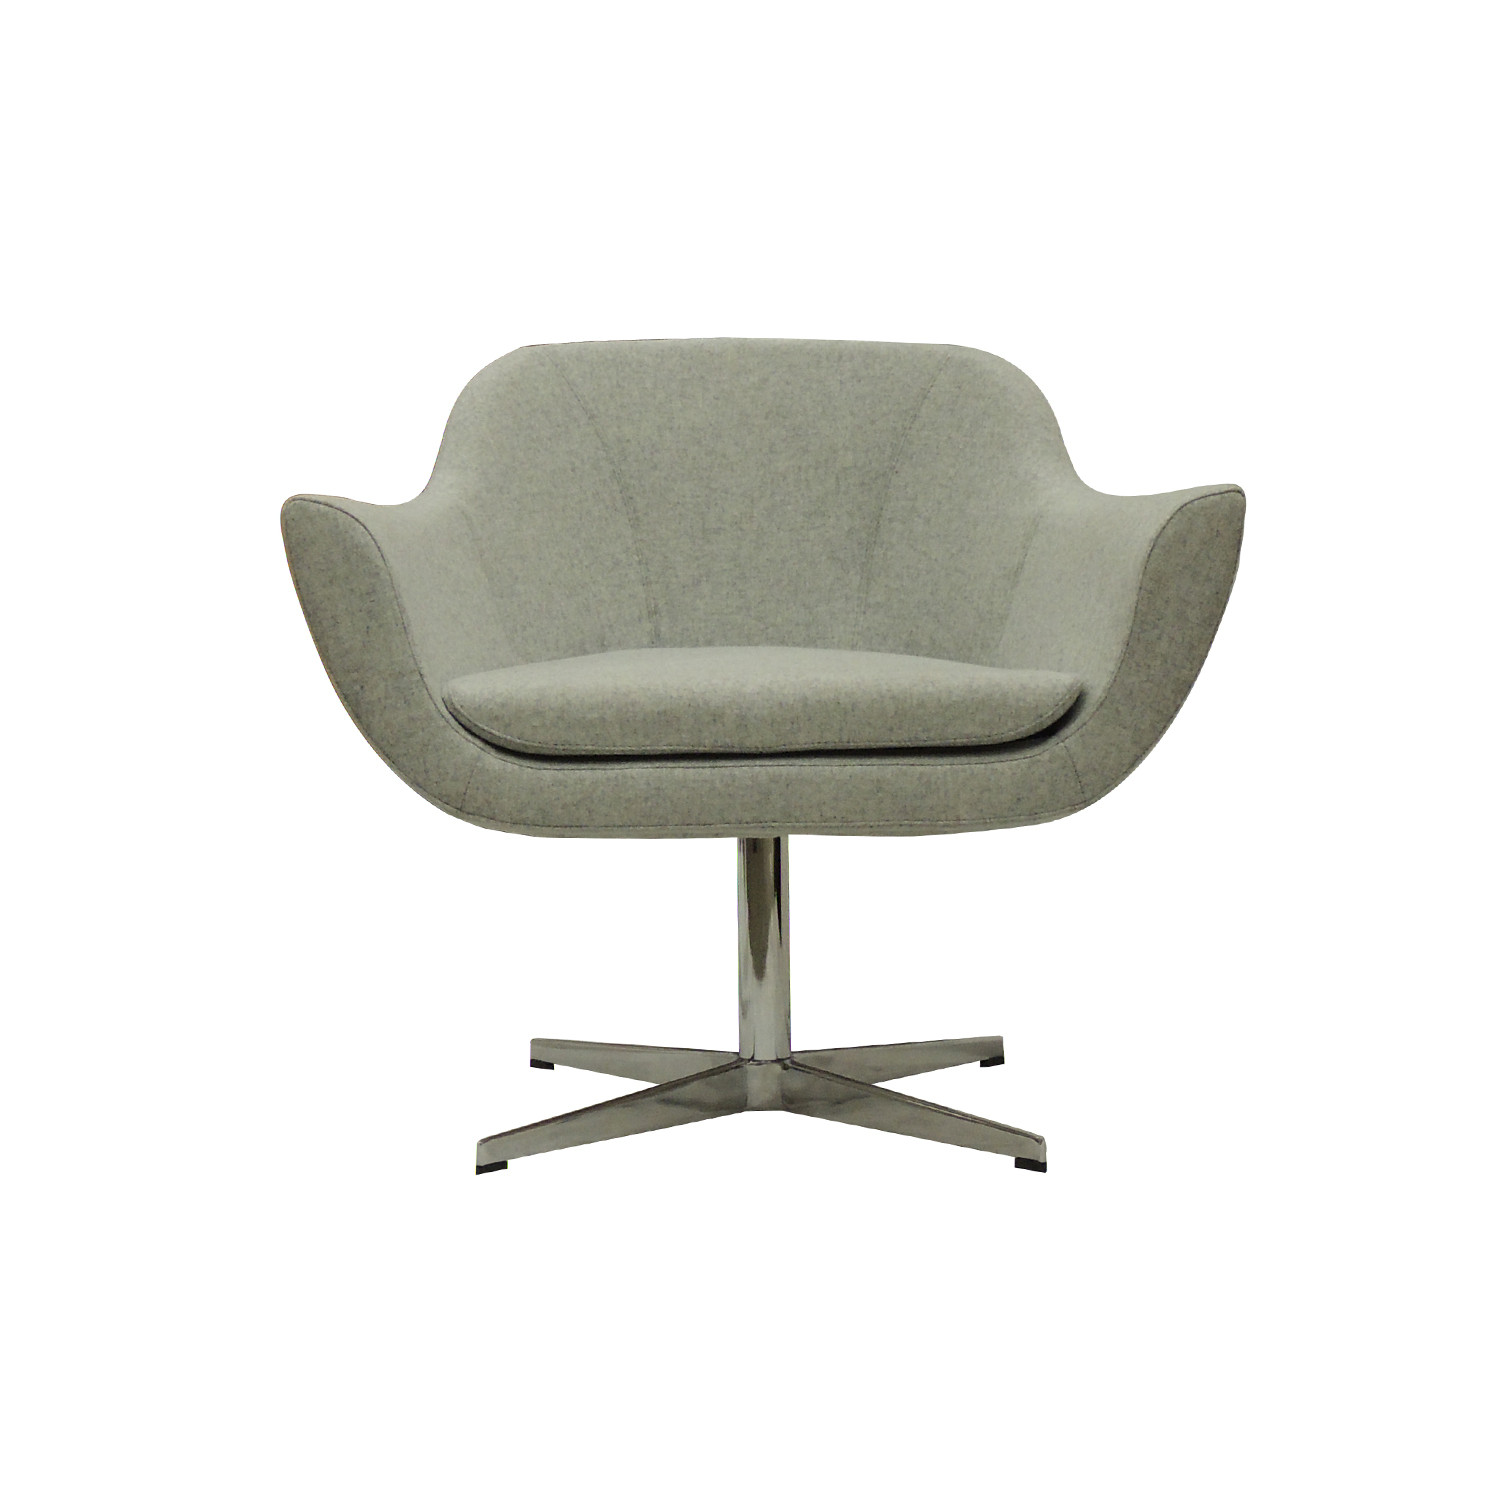 Charmant Green Lounge Chair // Swivel